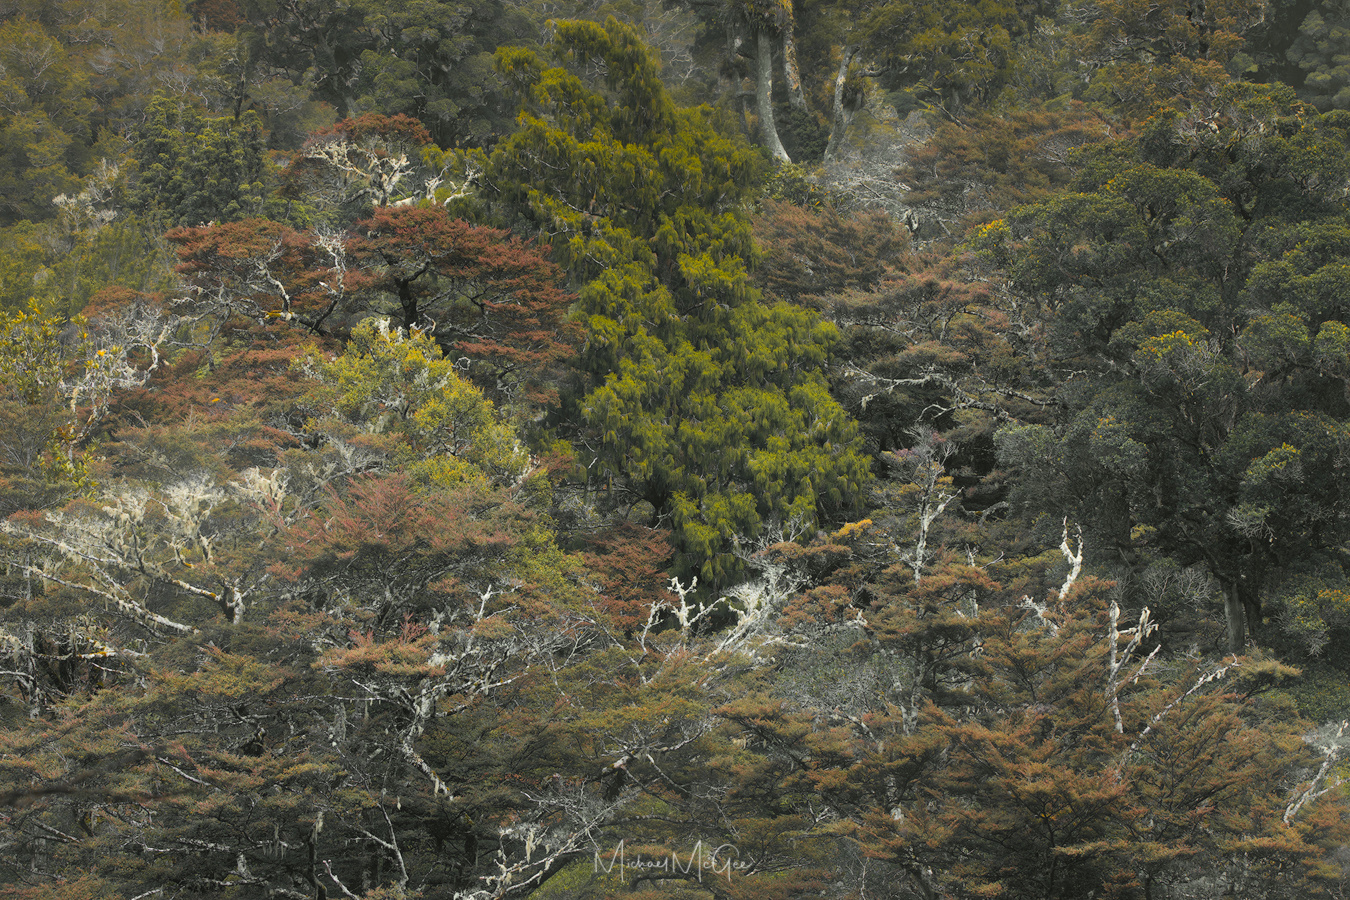 Portraits of New Zealand Rainforest (2) by Michael McGee